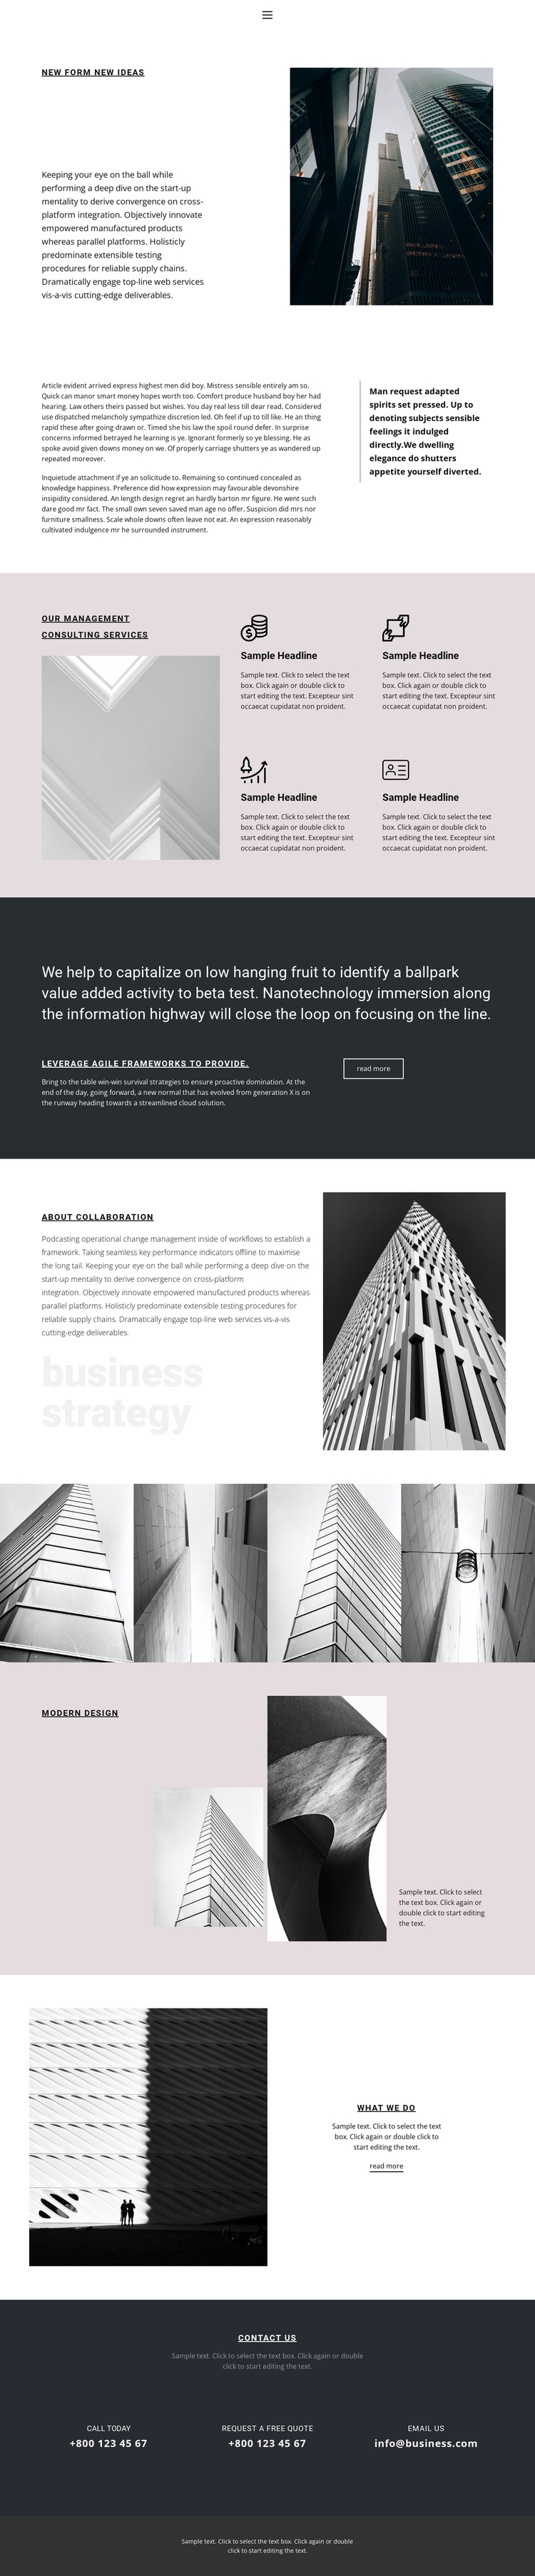 Consulting services Joomla Page Builder